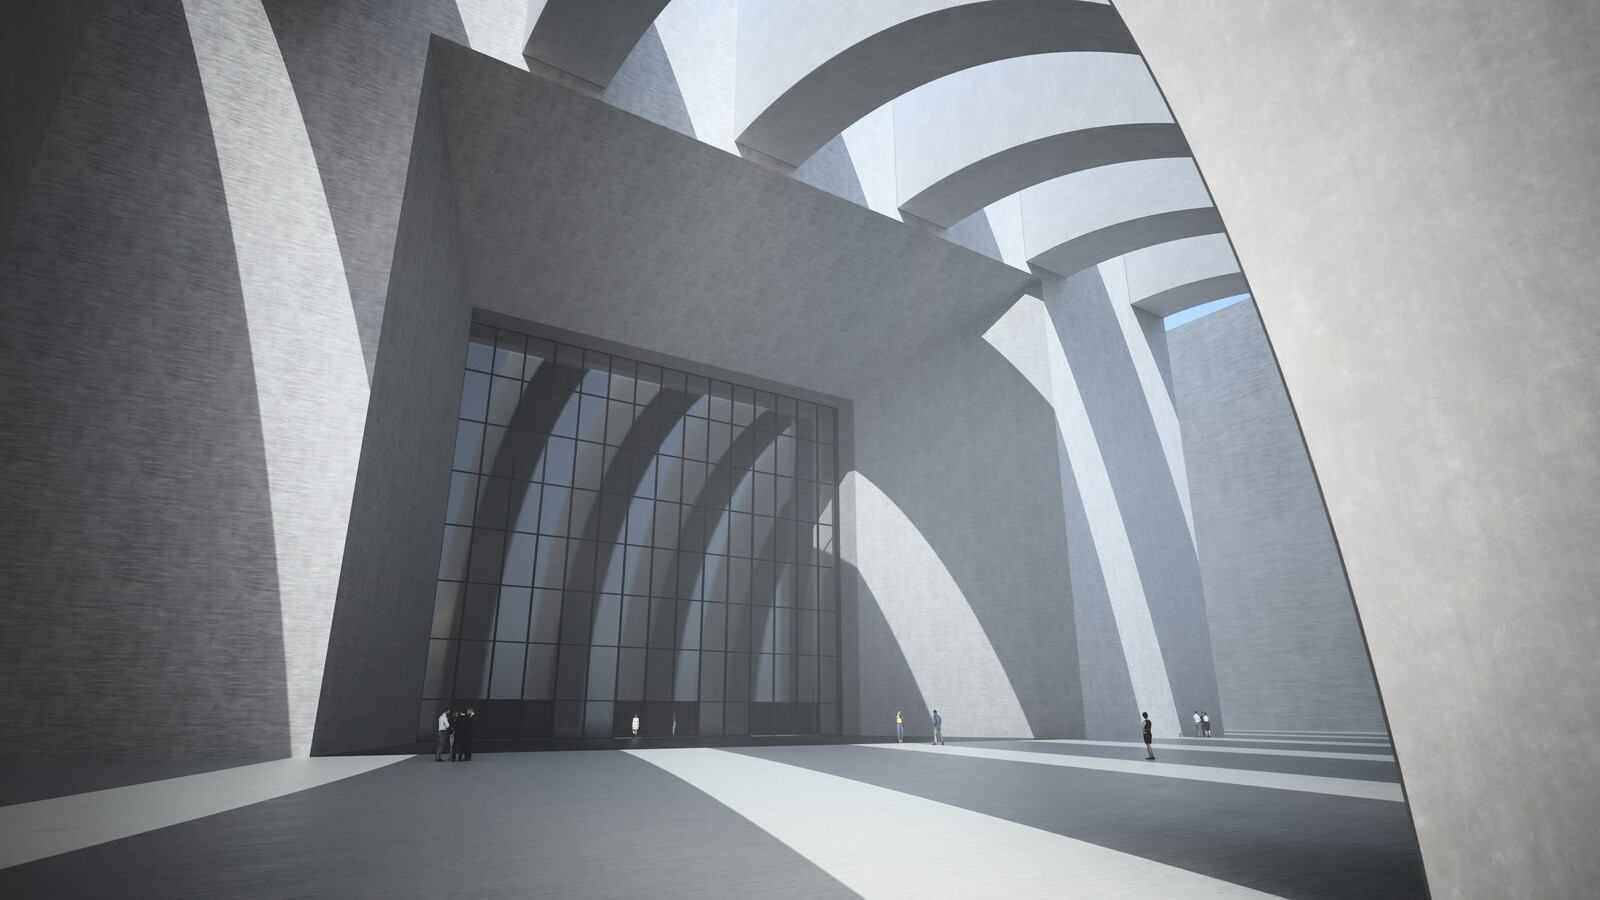 SketchUp 2019 + Thea Render  Large Hall Main Entry_SU8 2018-Scene 7 no pillars Emitter 3840x2160 43m48s 1024 sp 03 Optura981114crf